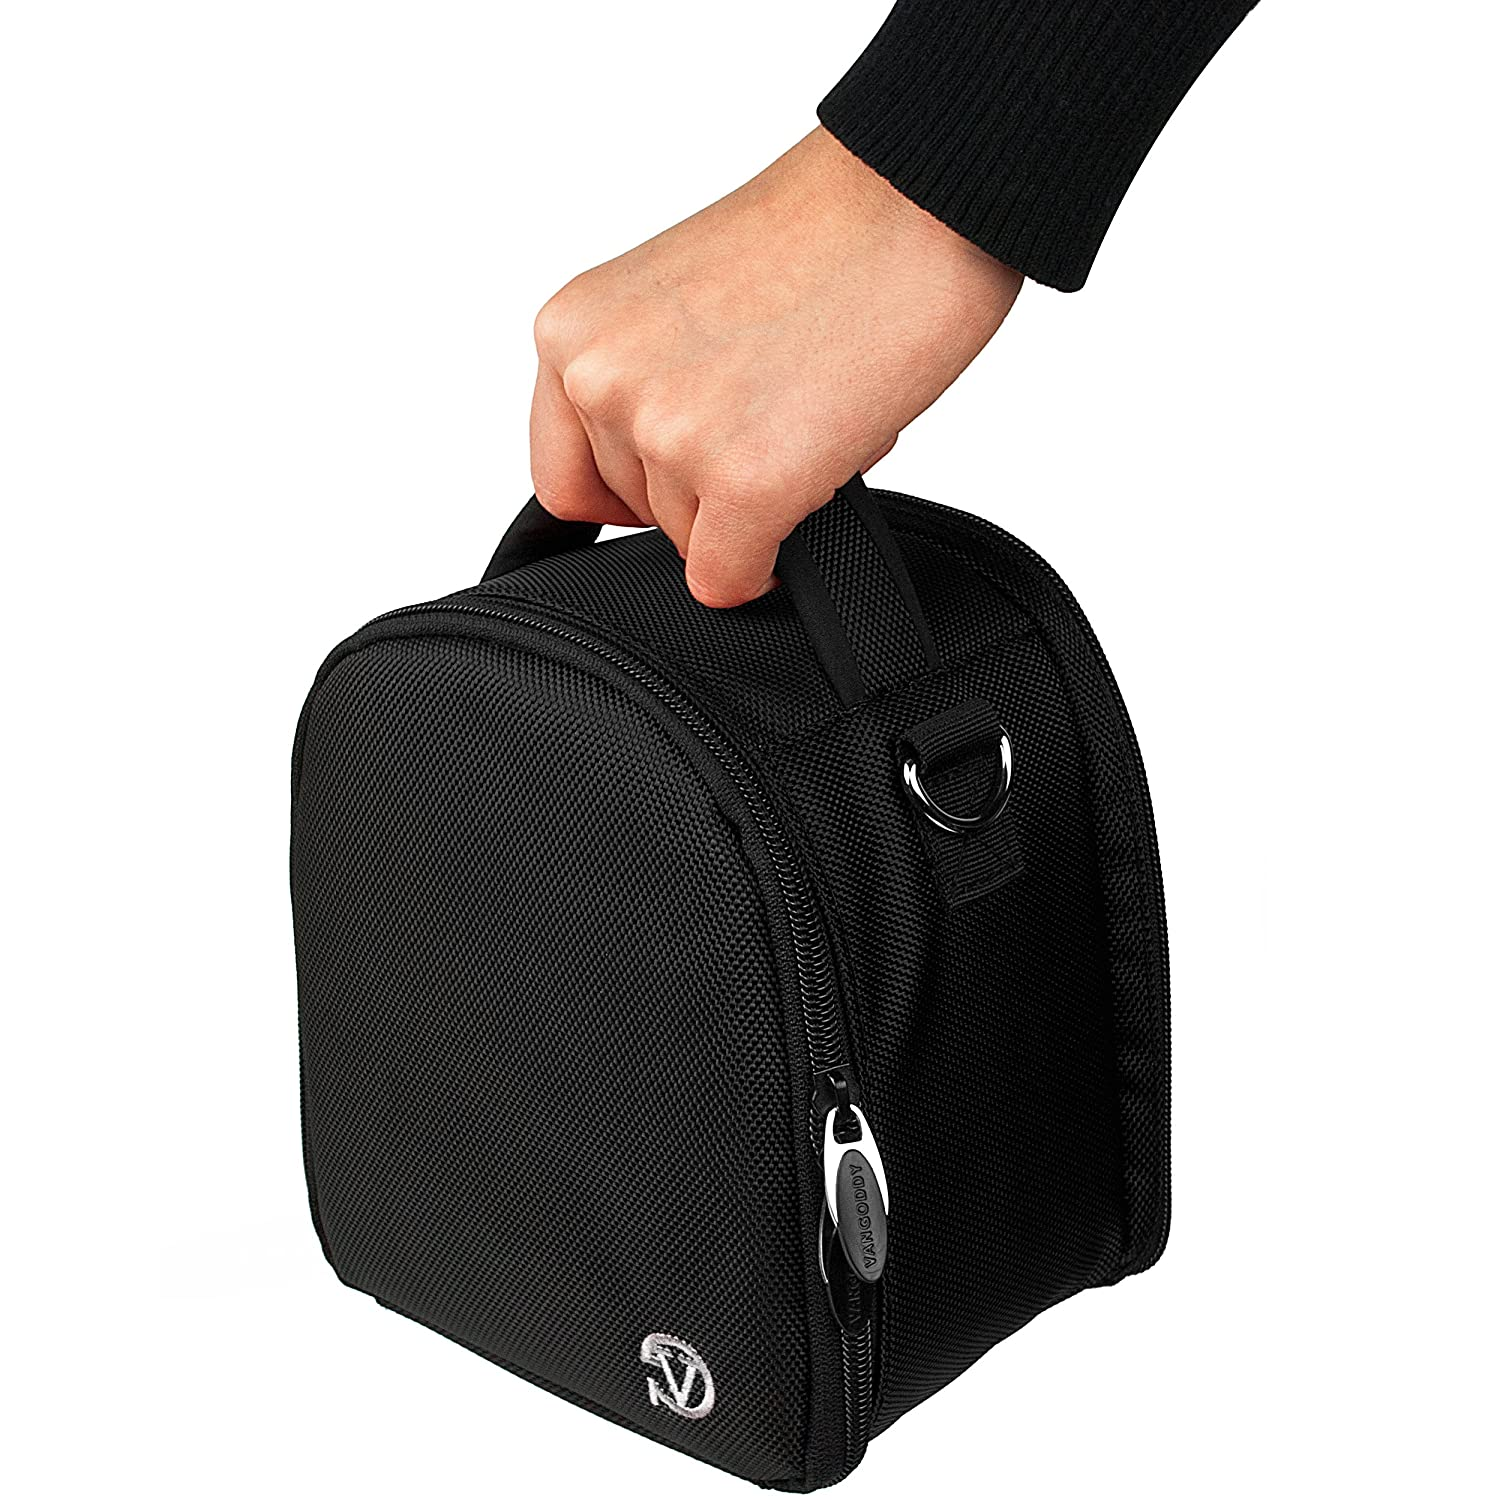 VanGoddy Laurel Carrying Case Bag for Sony Cyber-Shot / Alpha / E-Mount / A-Mount Series Camera's